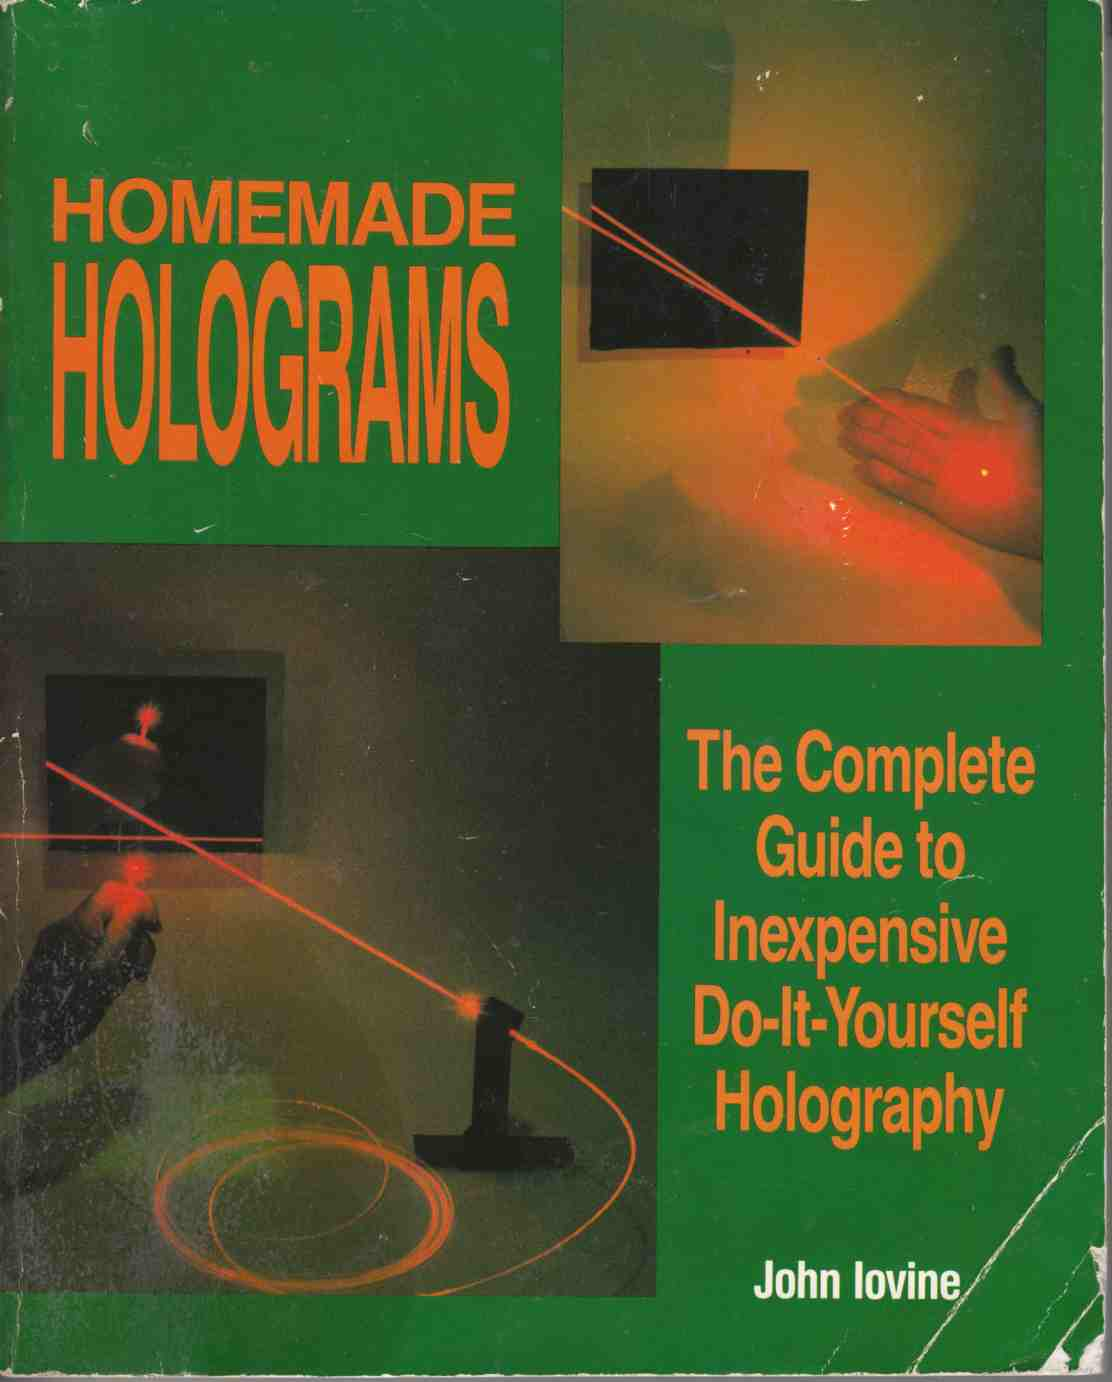 Image for Homemade Holograms The Complete Guide to Inexpensive Do-It-Yourself Holography